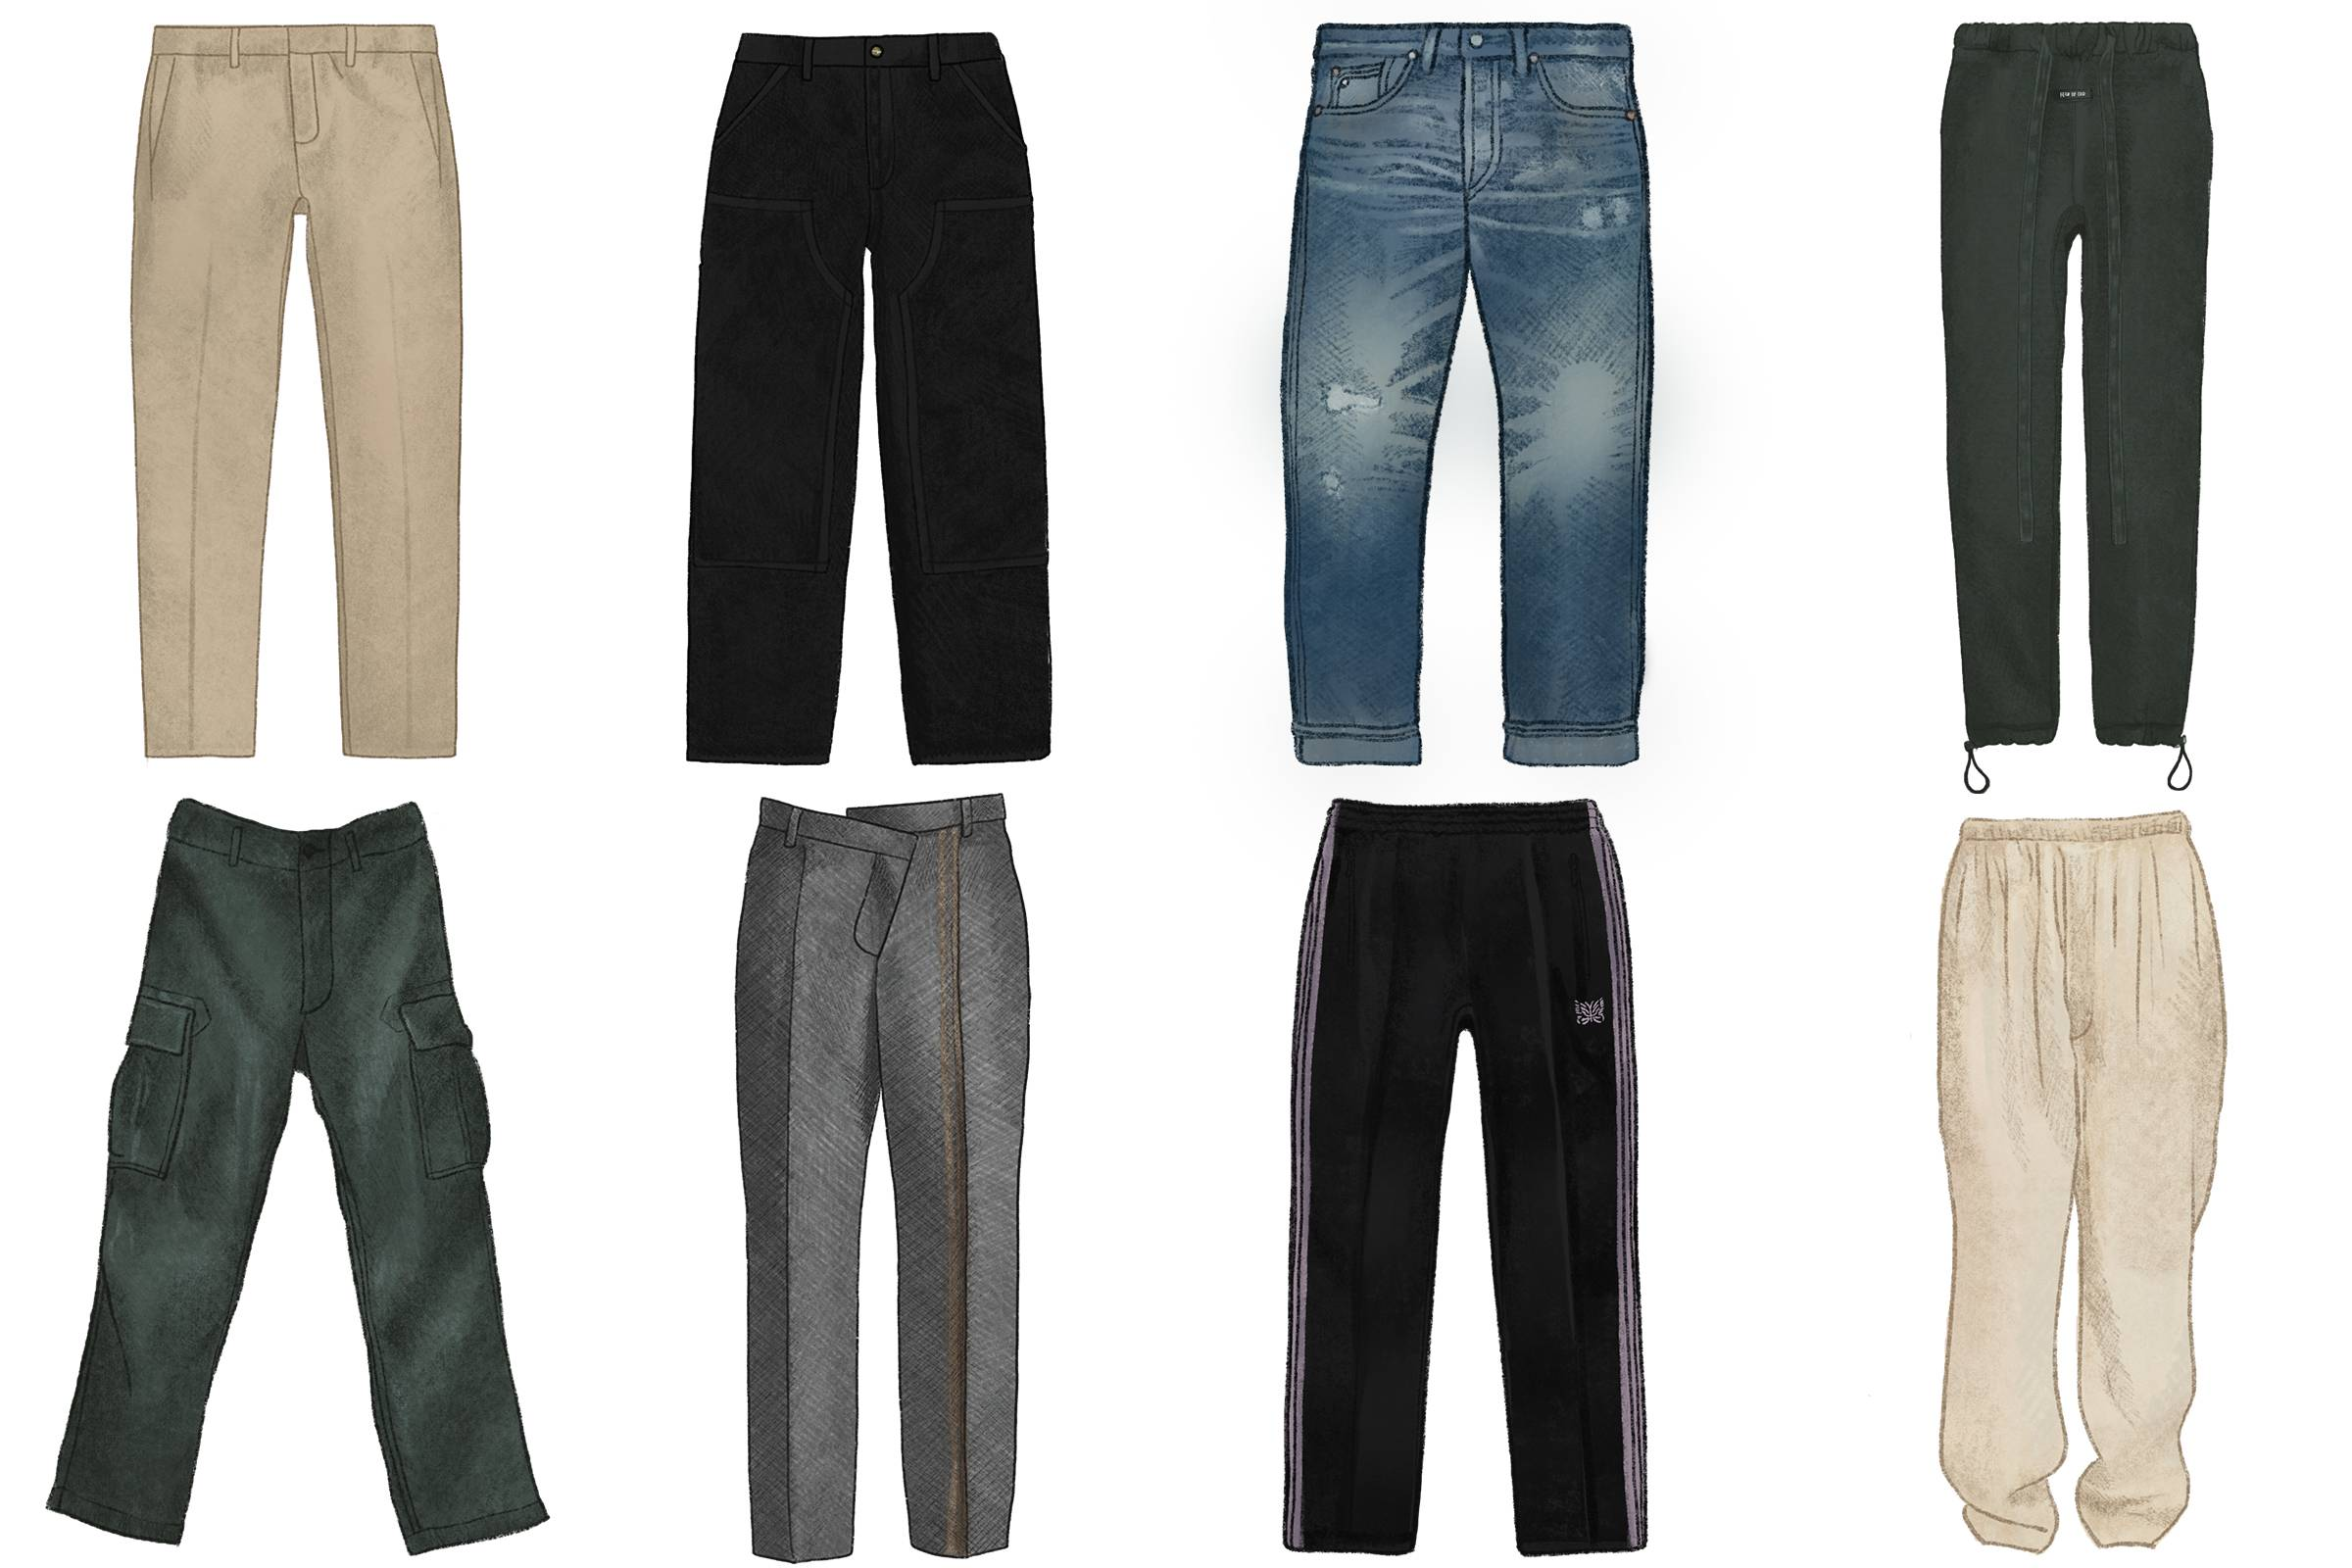 Men's Pant Styles Every Guy Should Know